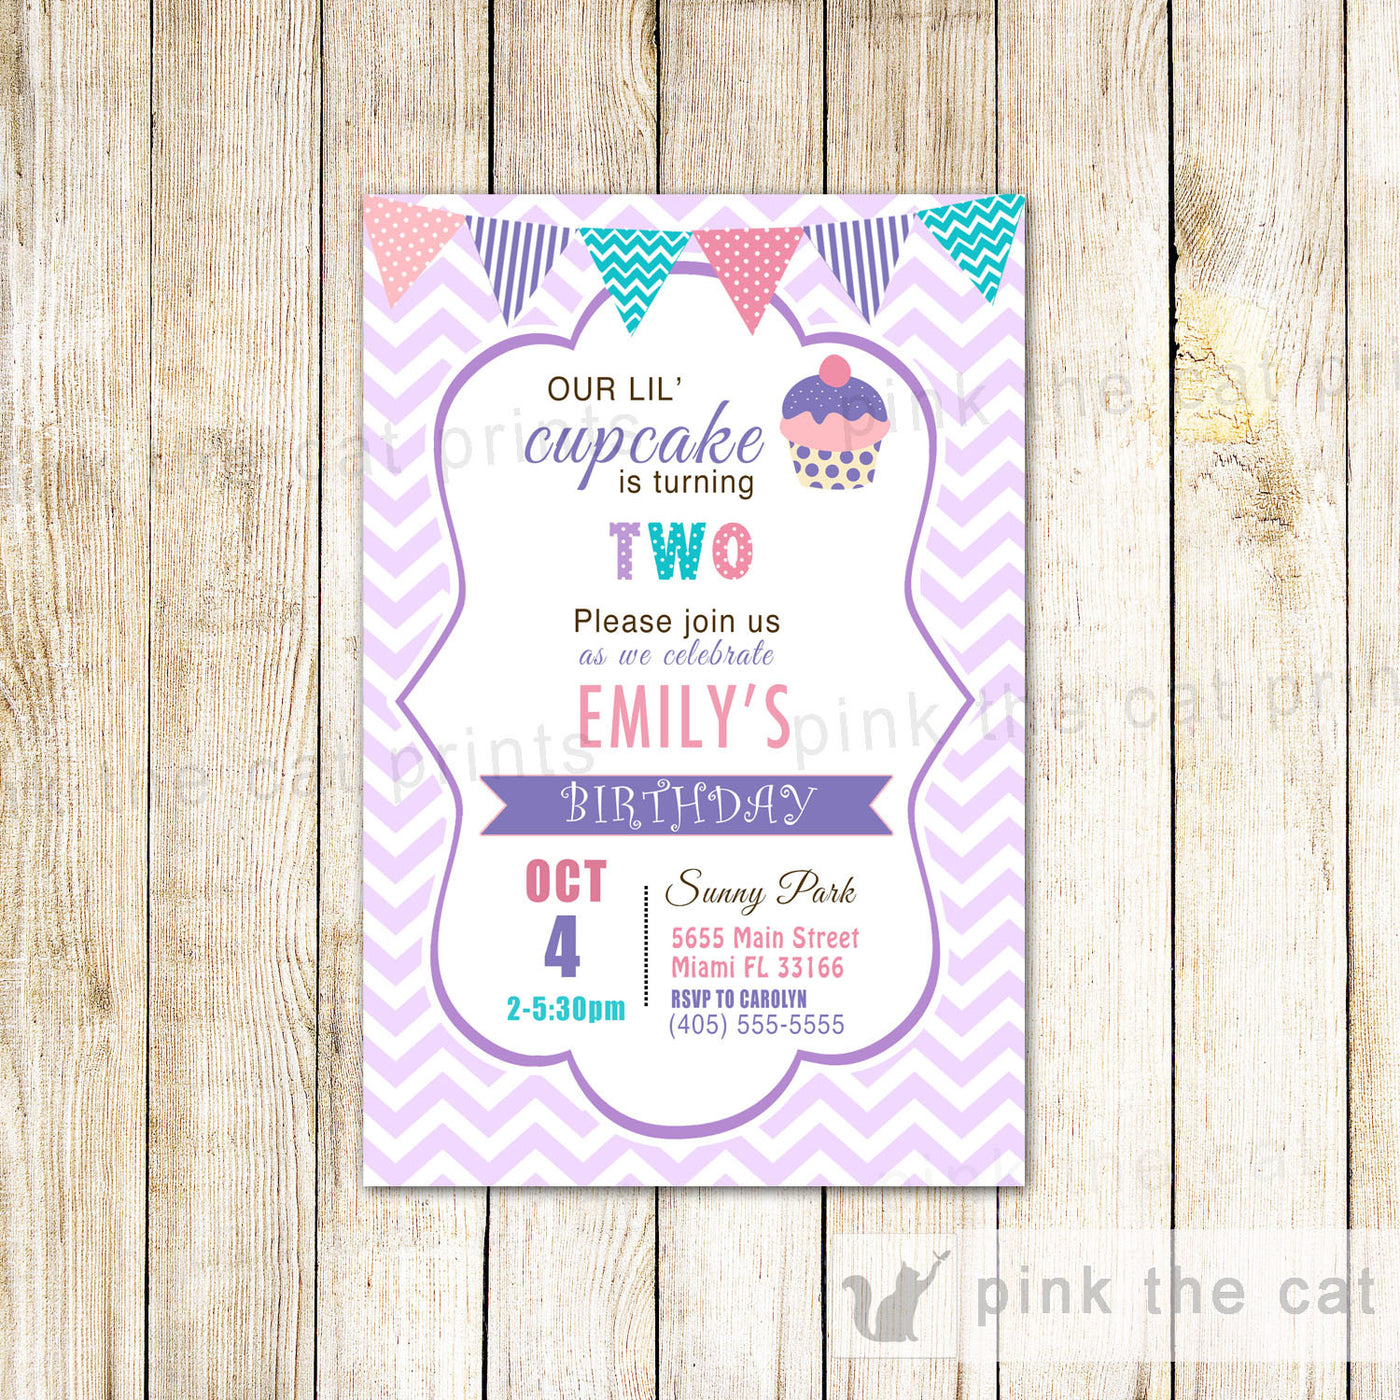 cupcake invitation girl birthday party purple teal baby shower